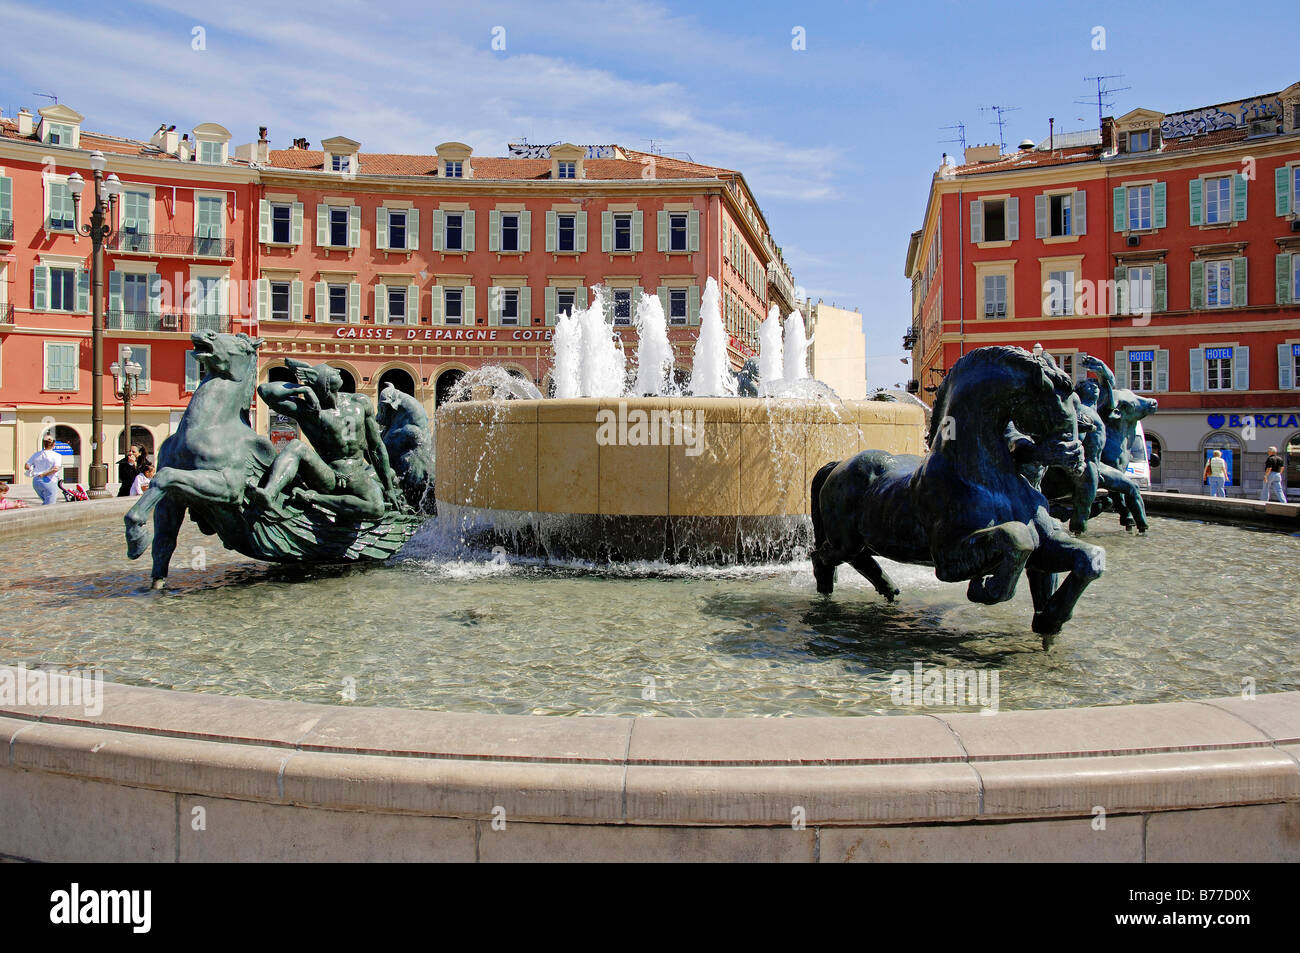 Fountain at Place Massena, Nice, Alpes-Maritimes, Provence-Alpes-Cote d'Azur, Southern France, France, Europe - Stock Image